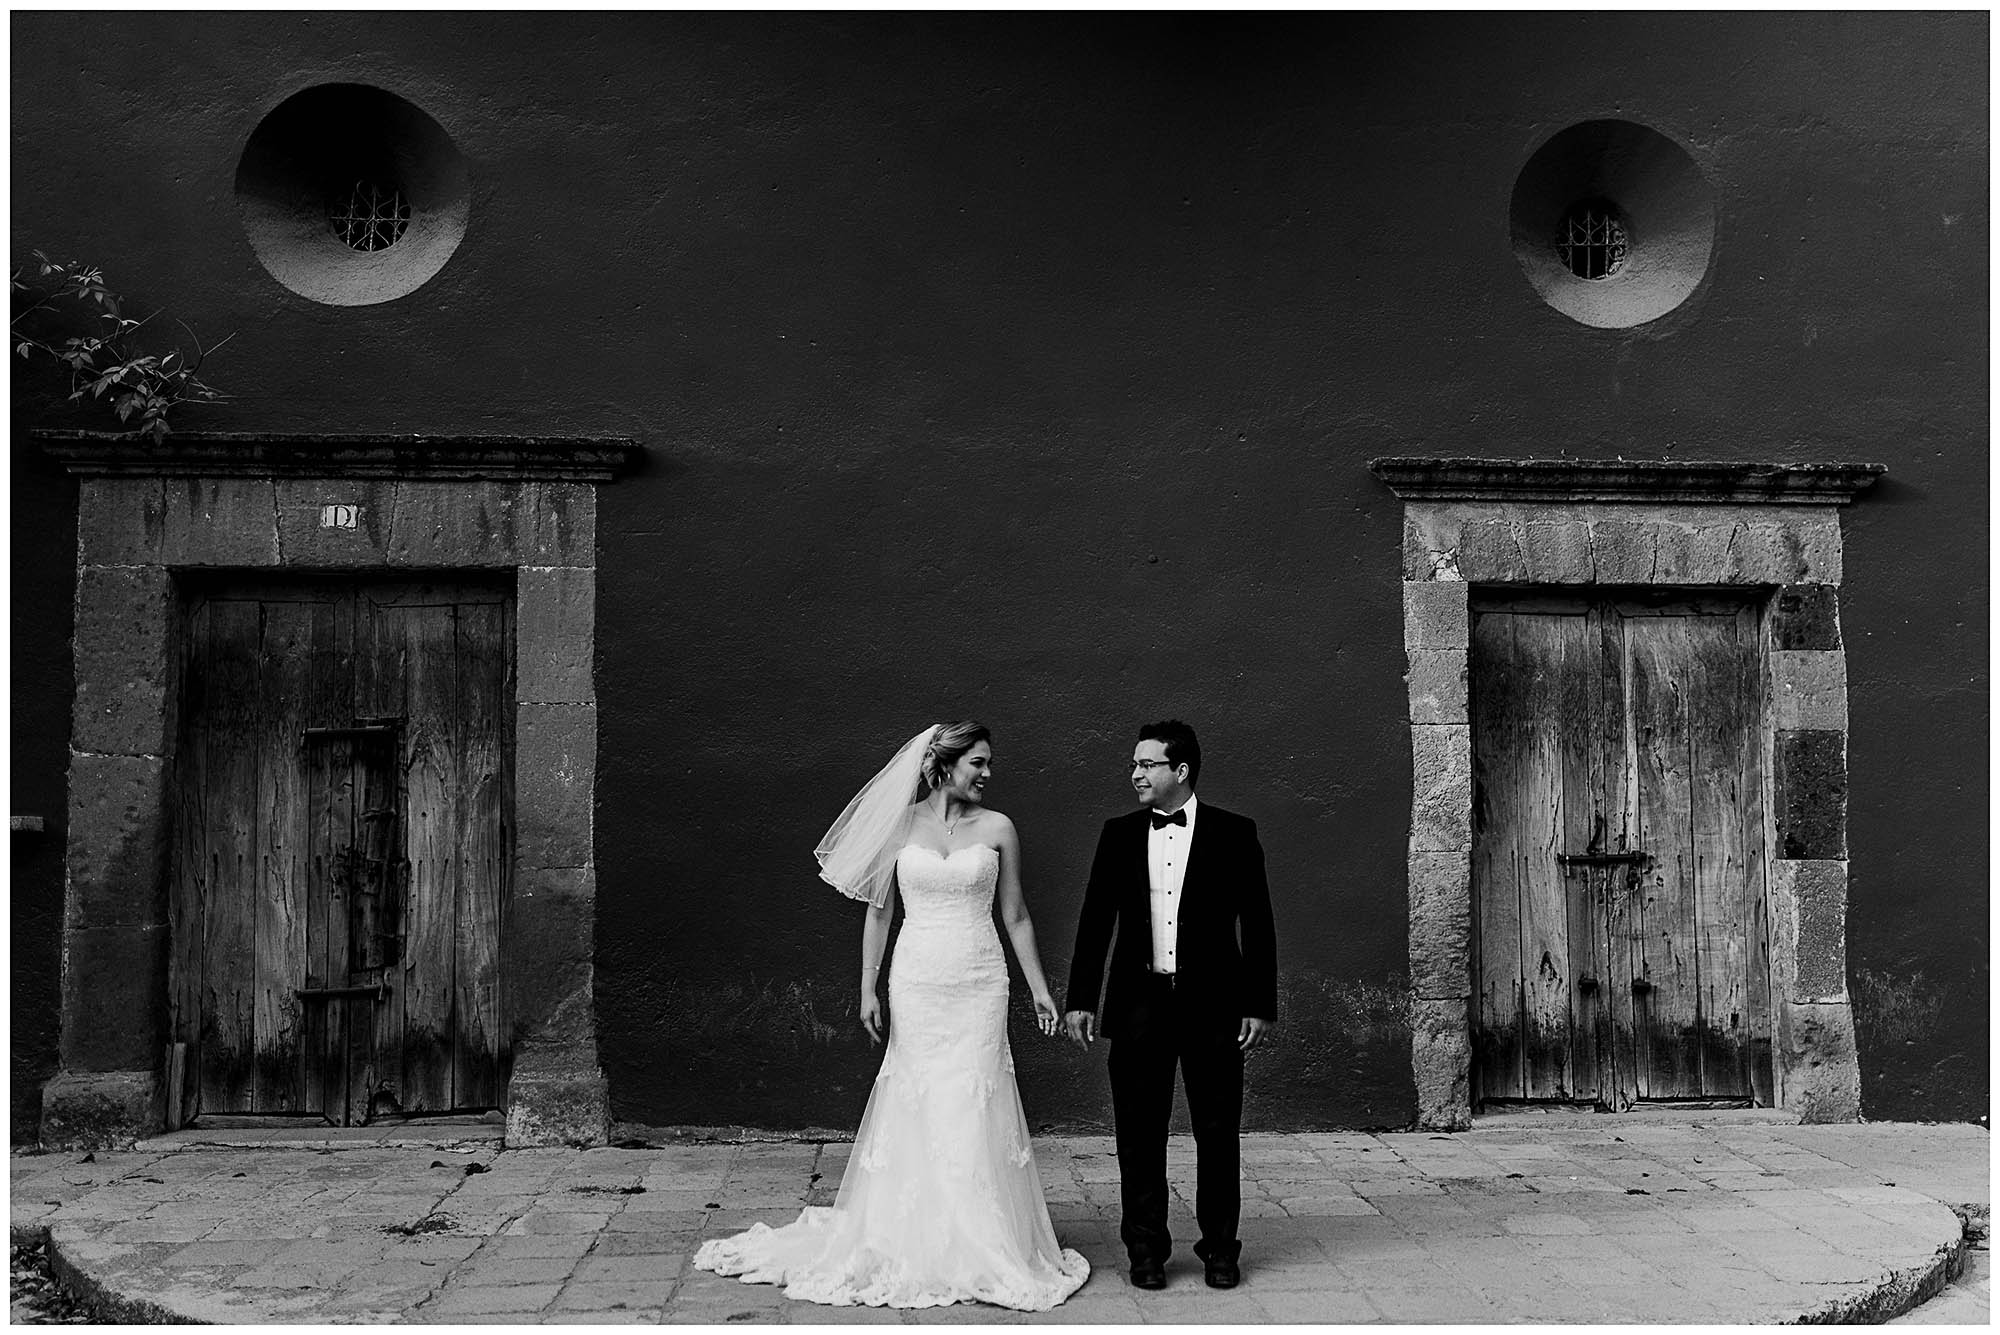 Trash_the_dress_san_miguel_de_allende_juan_luis_jimenez_15.jpg